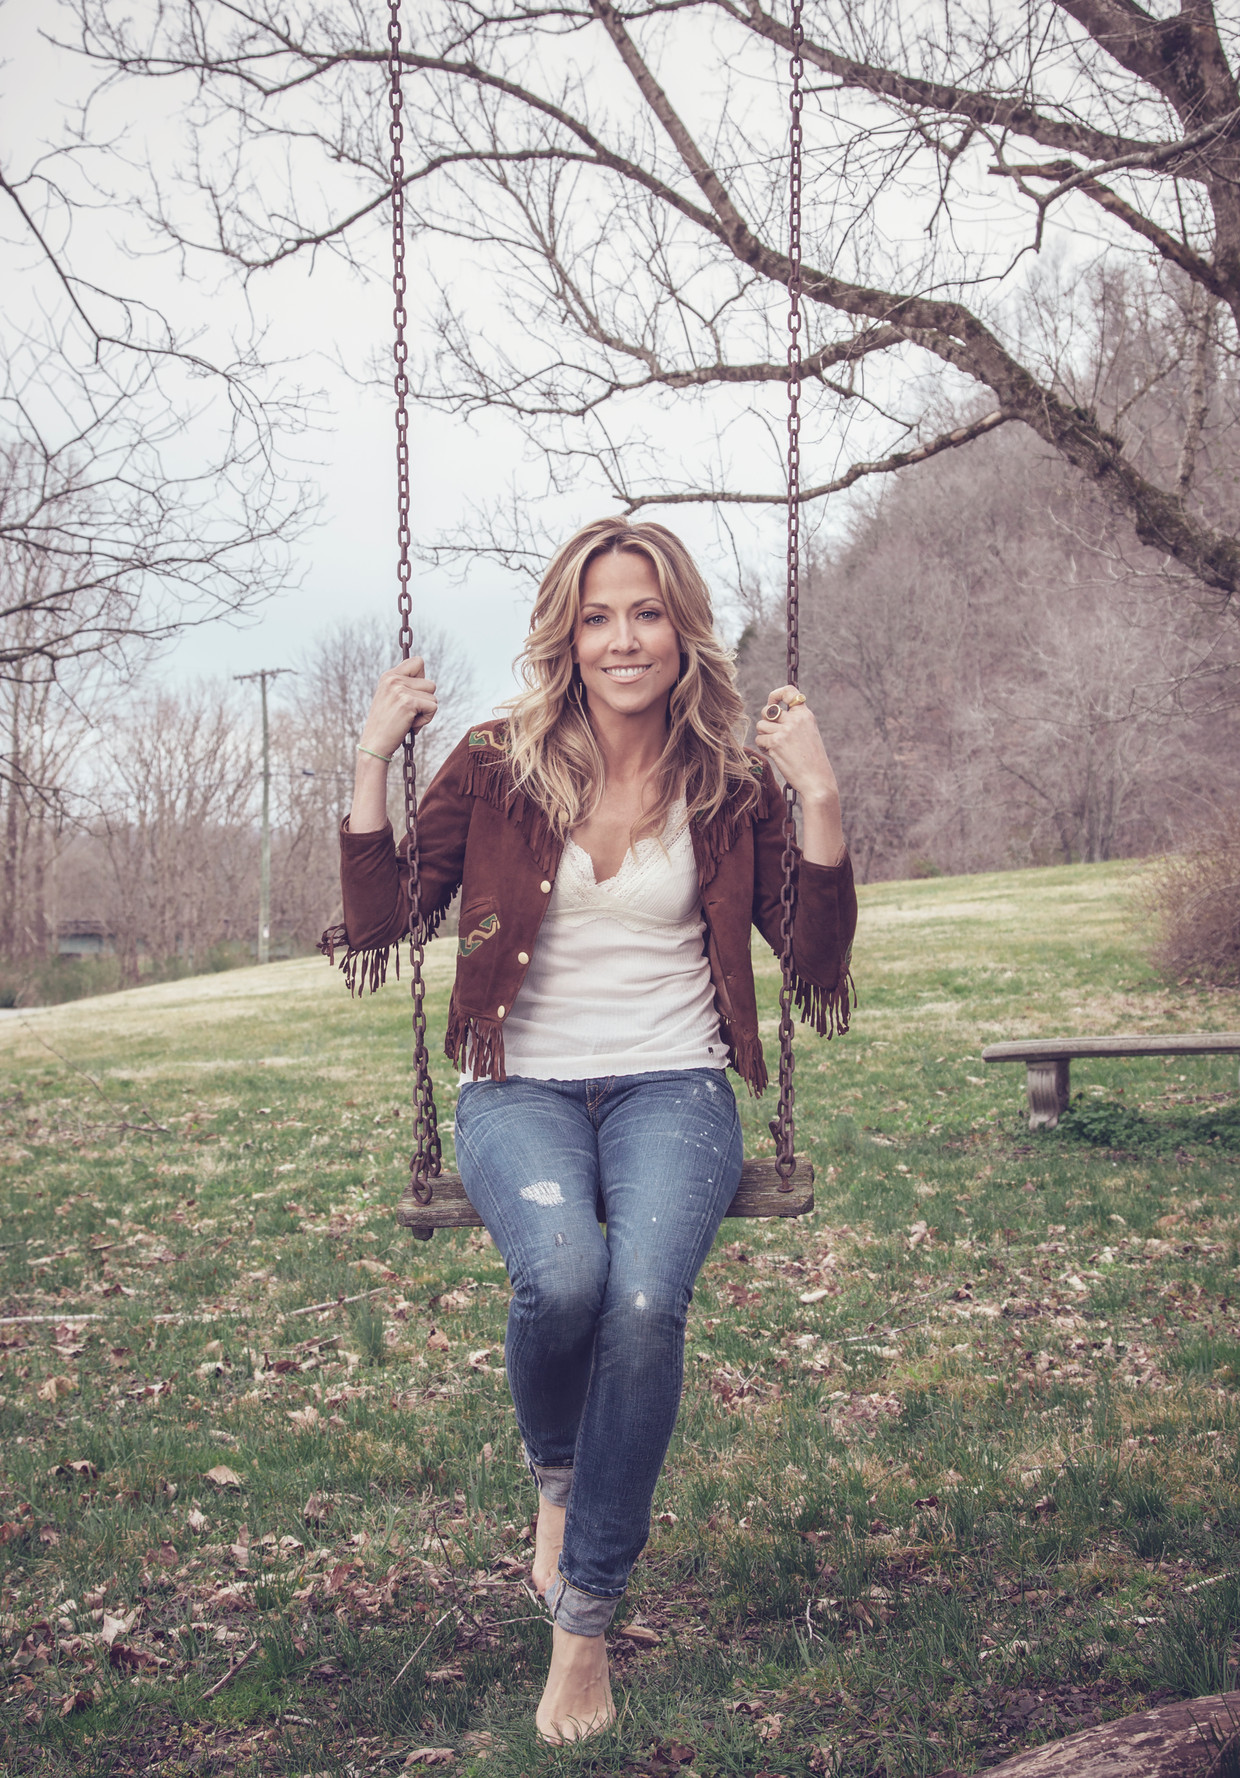 NASHVILLE, TN - FEBRUARY 13: Singer Sheryl Crow is photographed for The Hollywood Reporter on February 13, 2013 in Nashville, Tennessee. (Photo by LeAnn Mueller/Contour by Getty Images) Beeld Contour by Getty Images